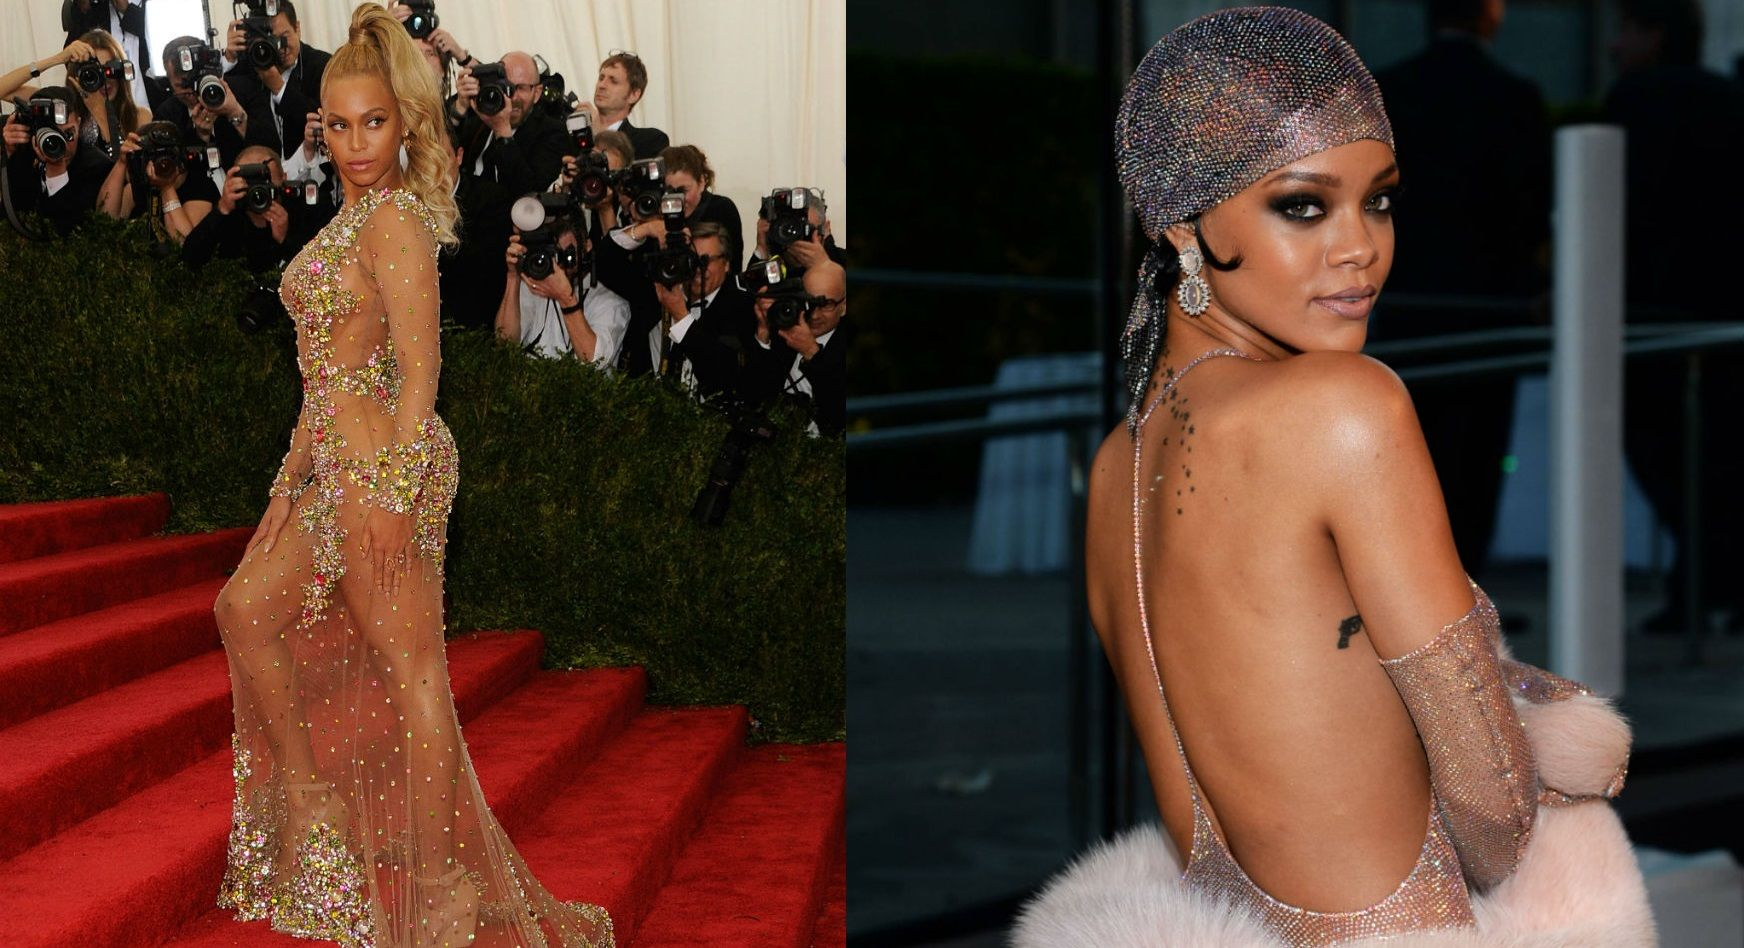 The 10 Most Revealing Dresses In Red Carpet History